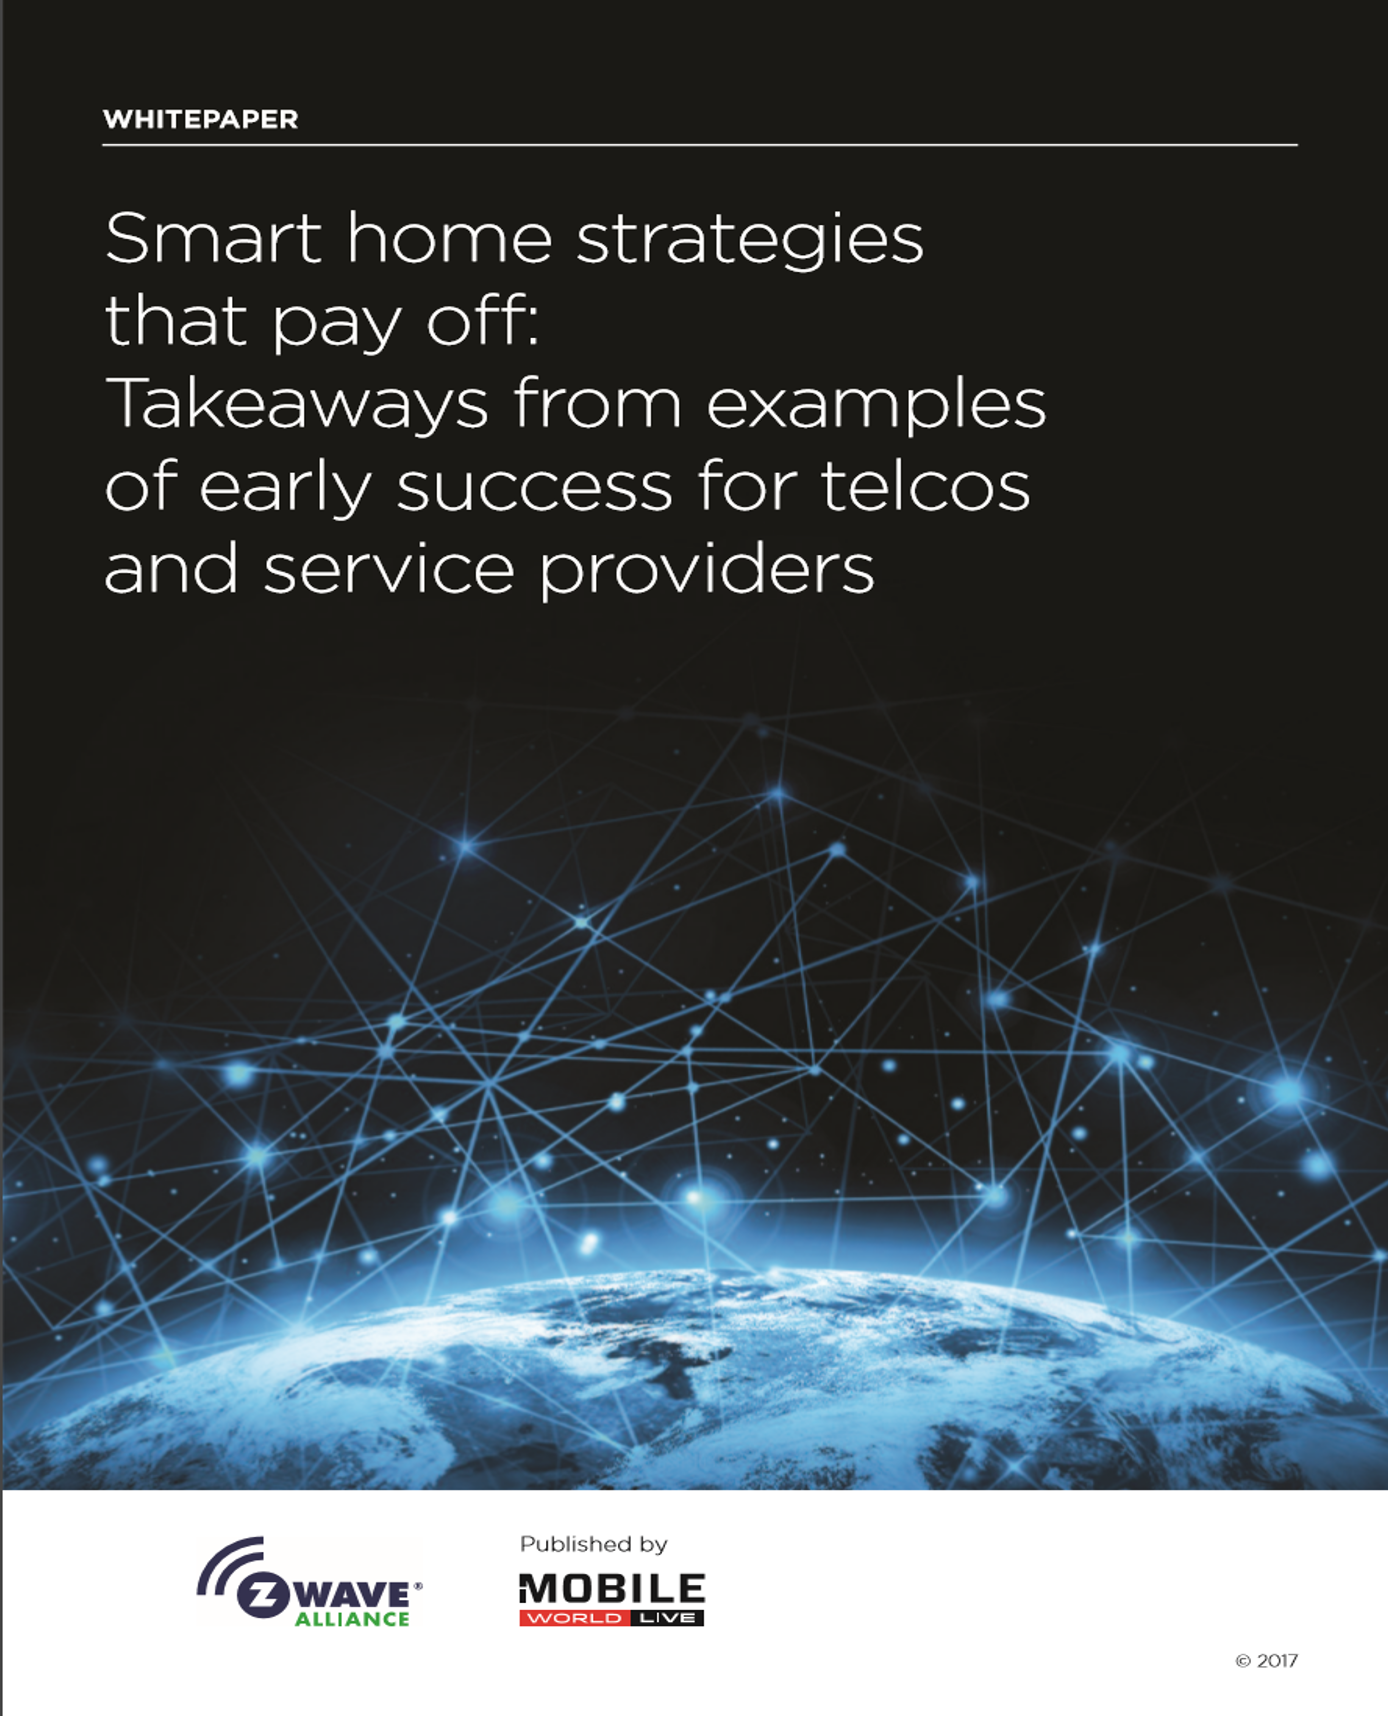 Smart home strategies that pay off